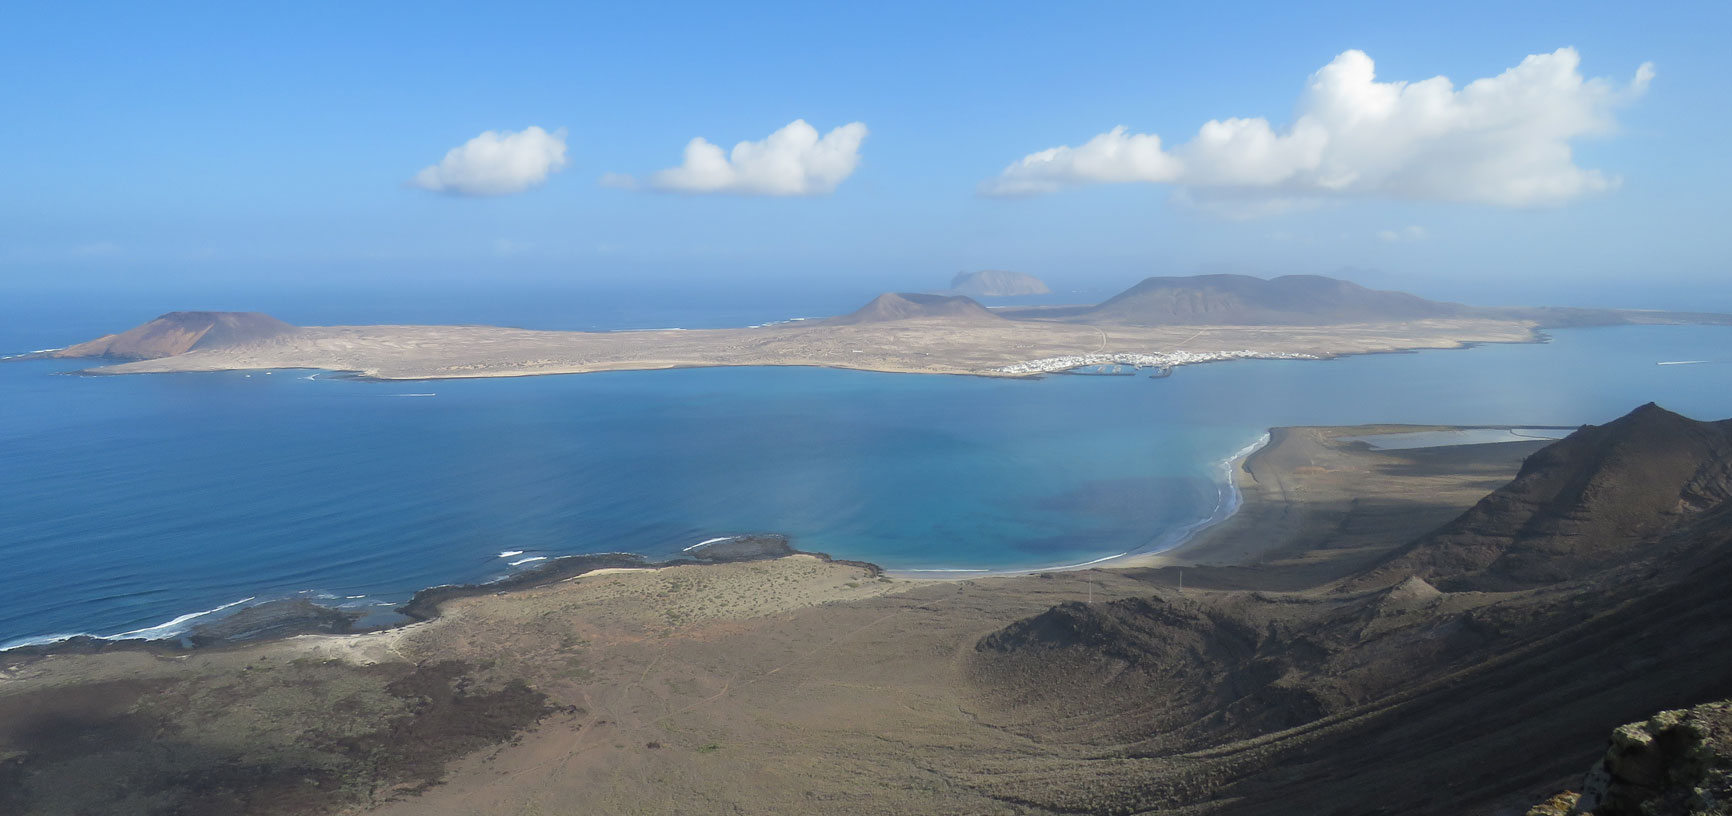 Main Image Surfing and Hiking Camp in Lanzarote